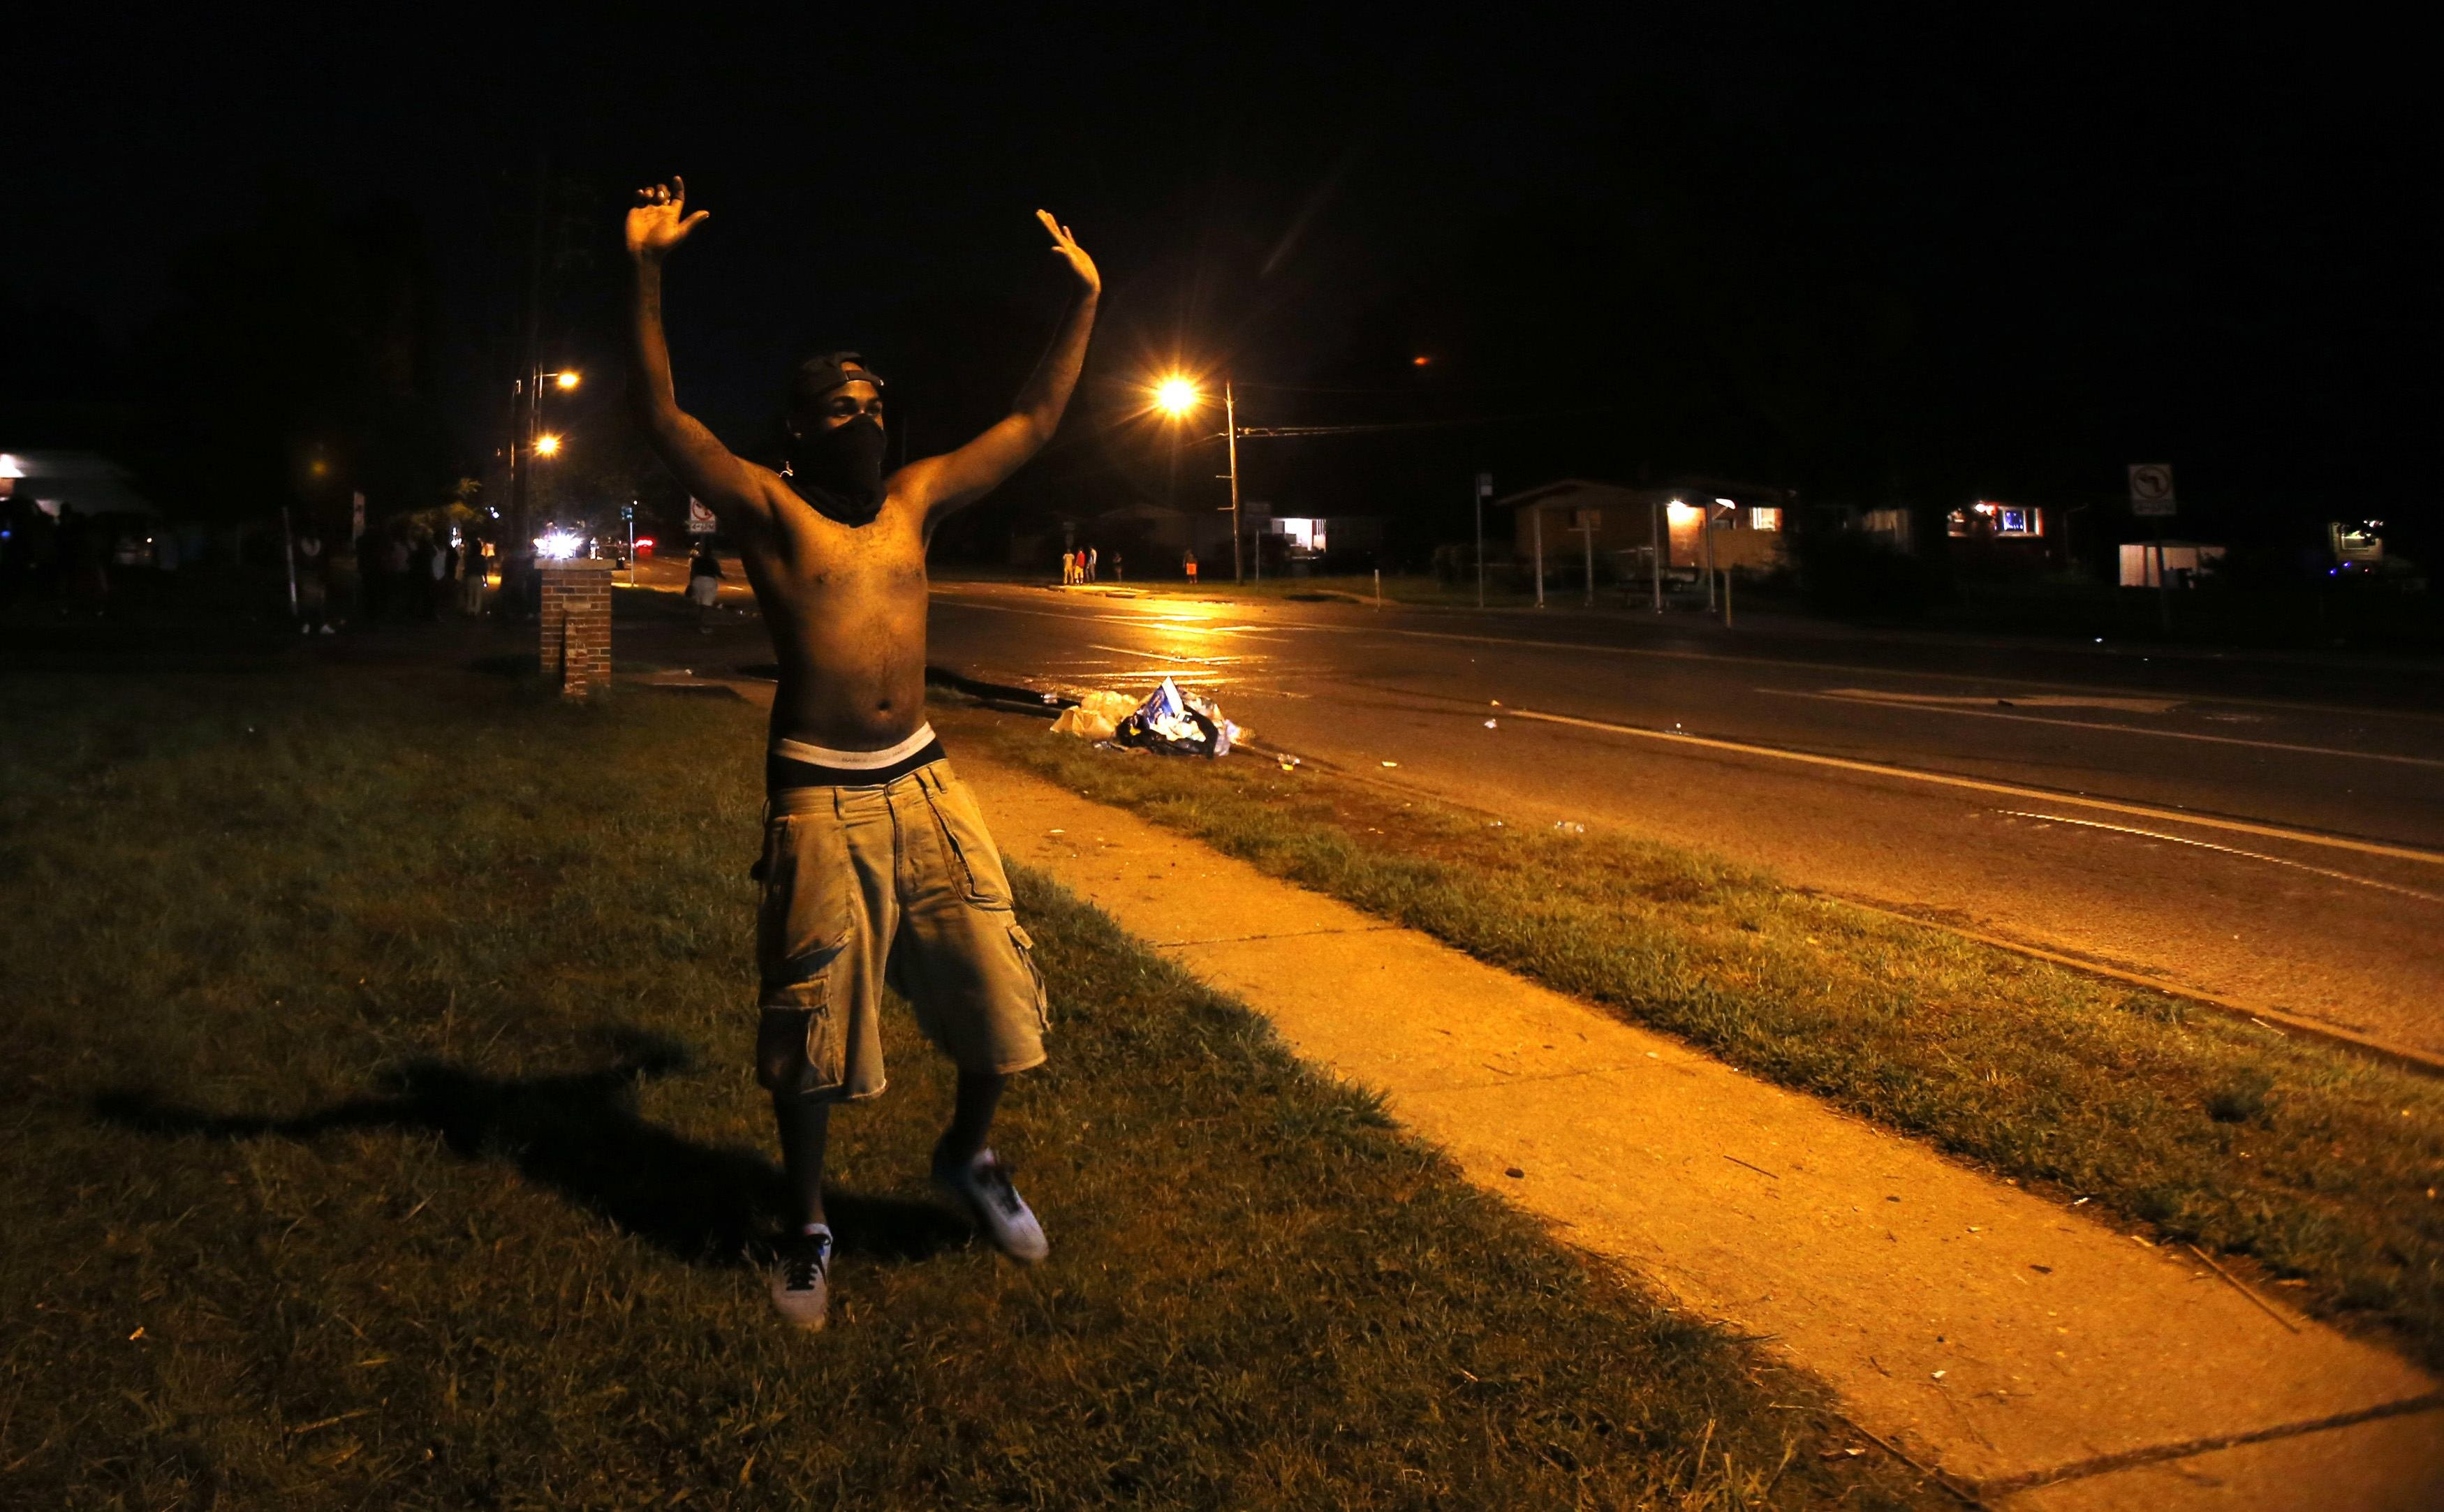 A demonstrator raises his hands in front of of a police officer in Ferguson, Mo. on Aug. 11, 2014.